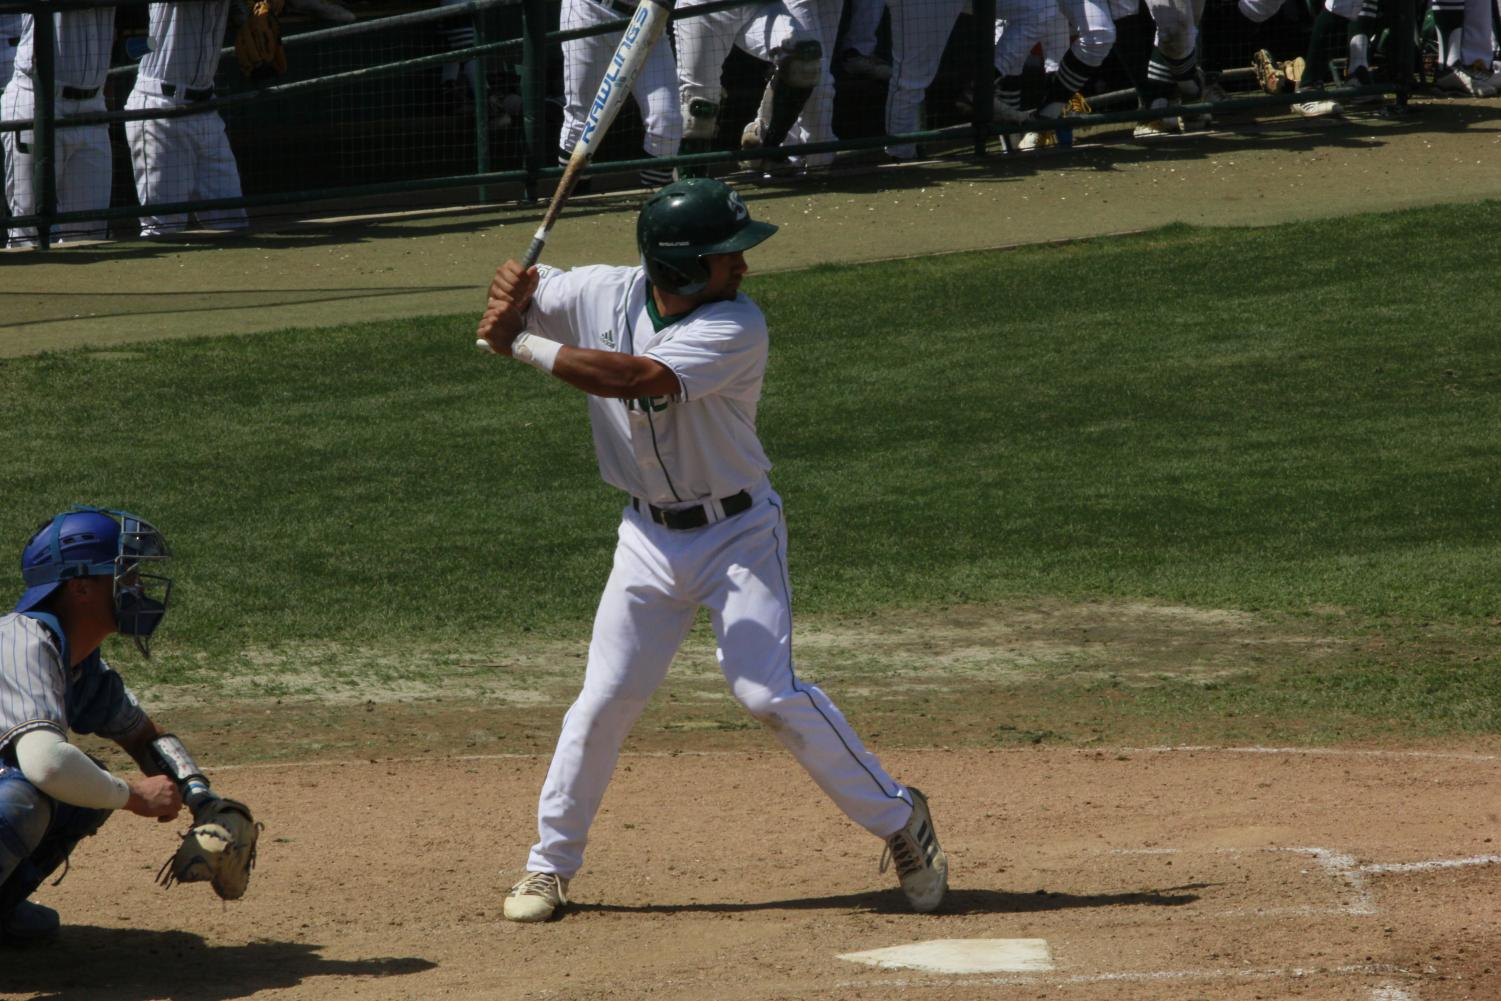 Sophomore+infielder+Keith+Torres+waits+for+a+pitch+in+a+5-4+win+Sunday+over+CSU+Bakersfield+at+John+Smith+Field.+Torres+had+one+hit+and+one+walk+in+the+win.